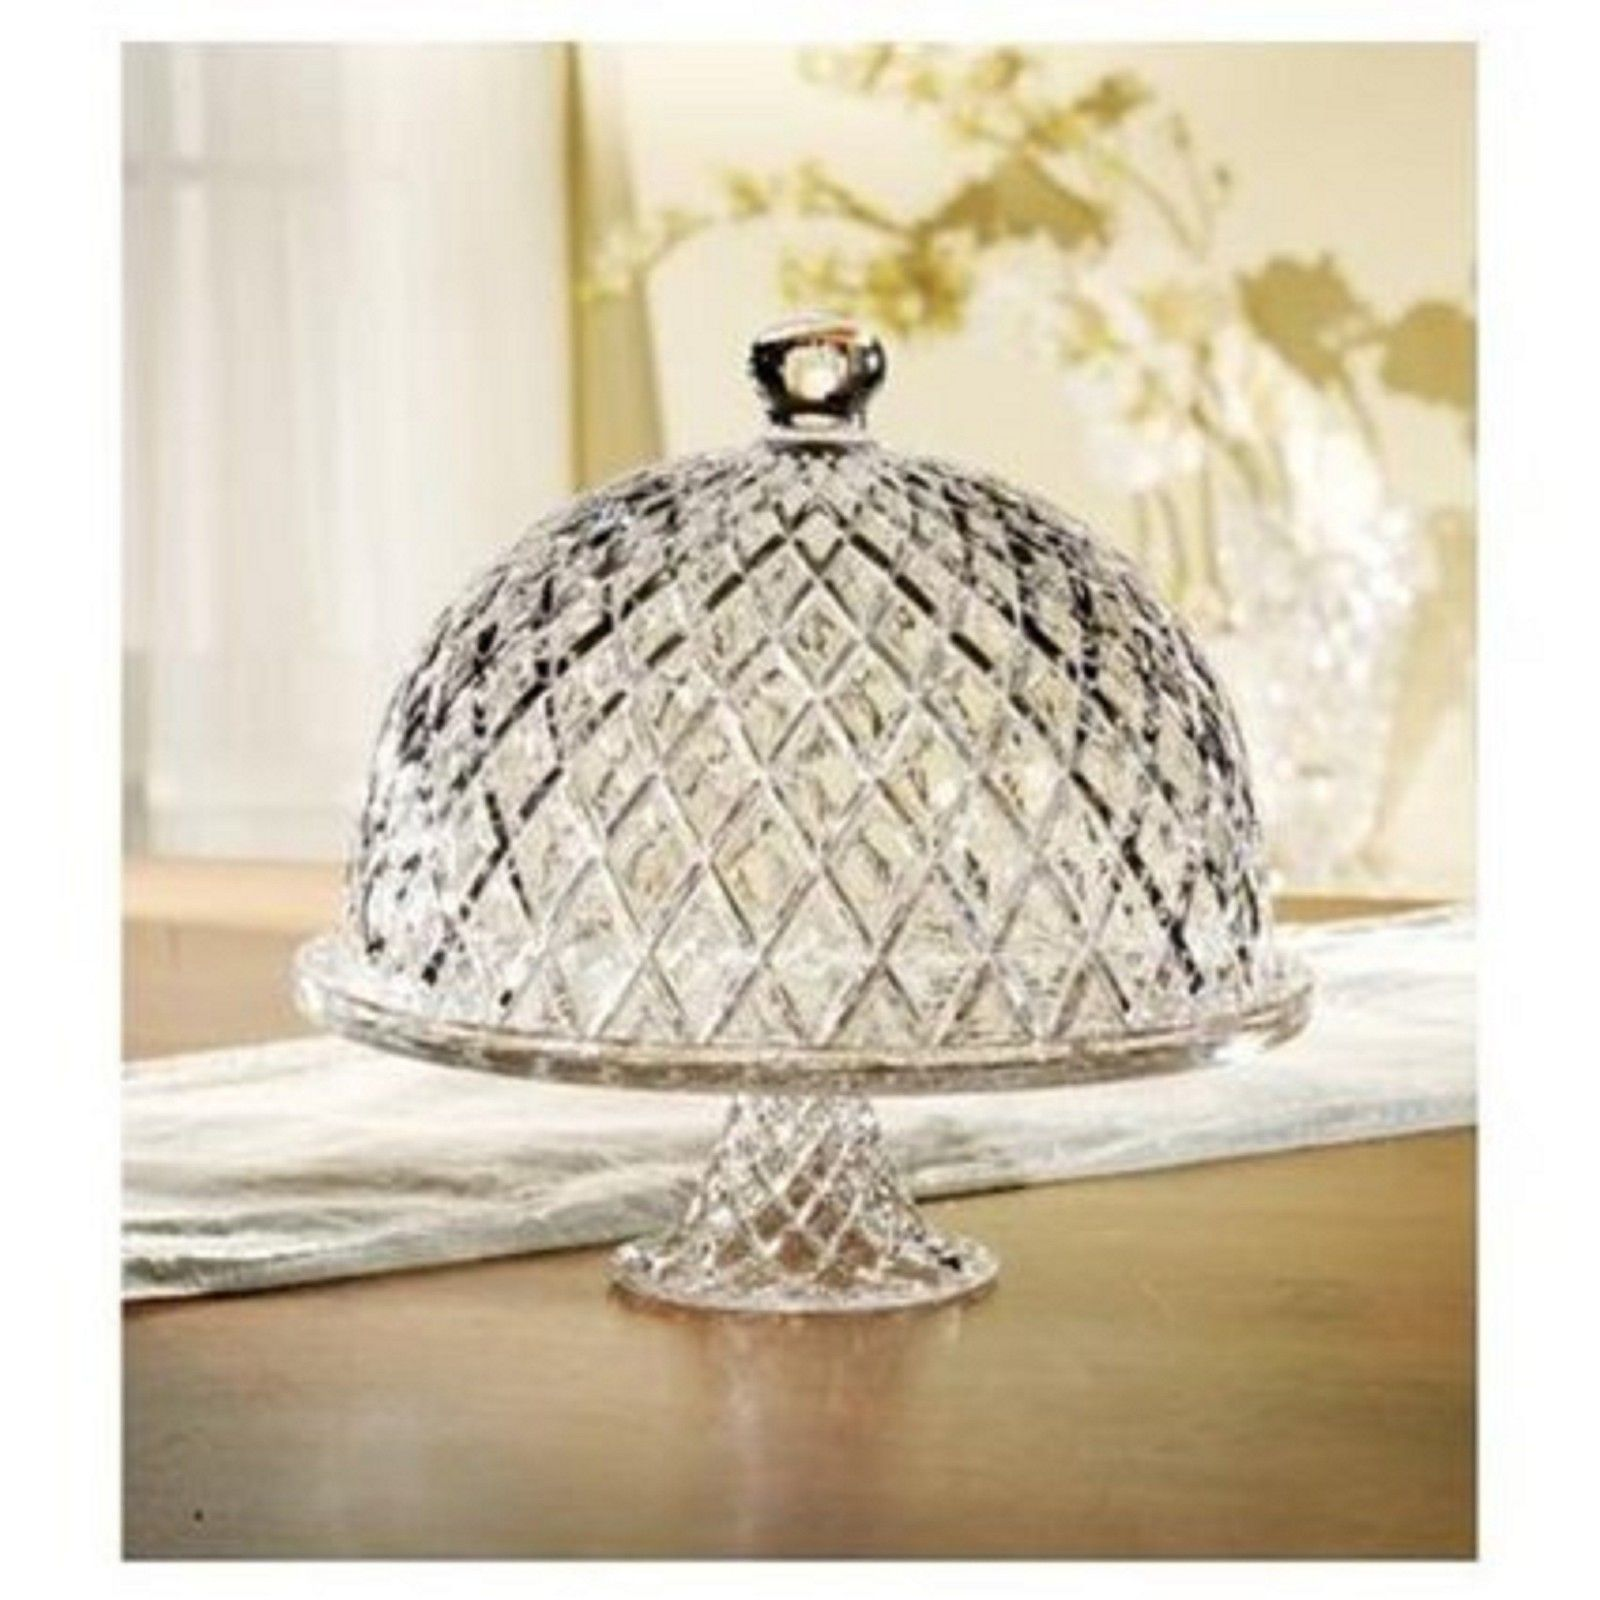 Dinnerware  sc 1 st  Pinterest & Vintage Cake Plate with Dome | Cake Glass Stand Pedestal Dome Lid ...